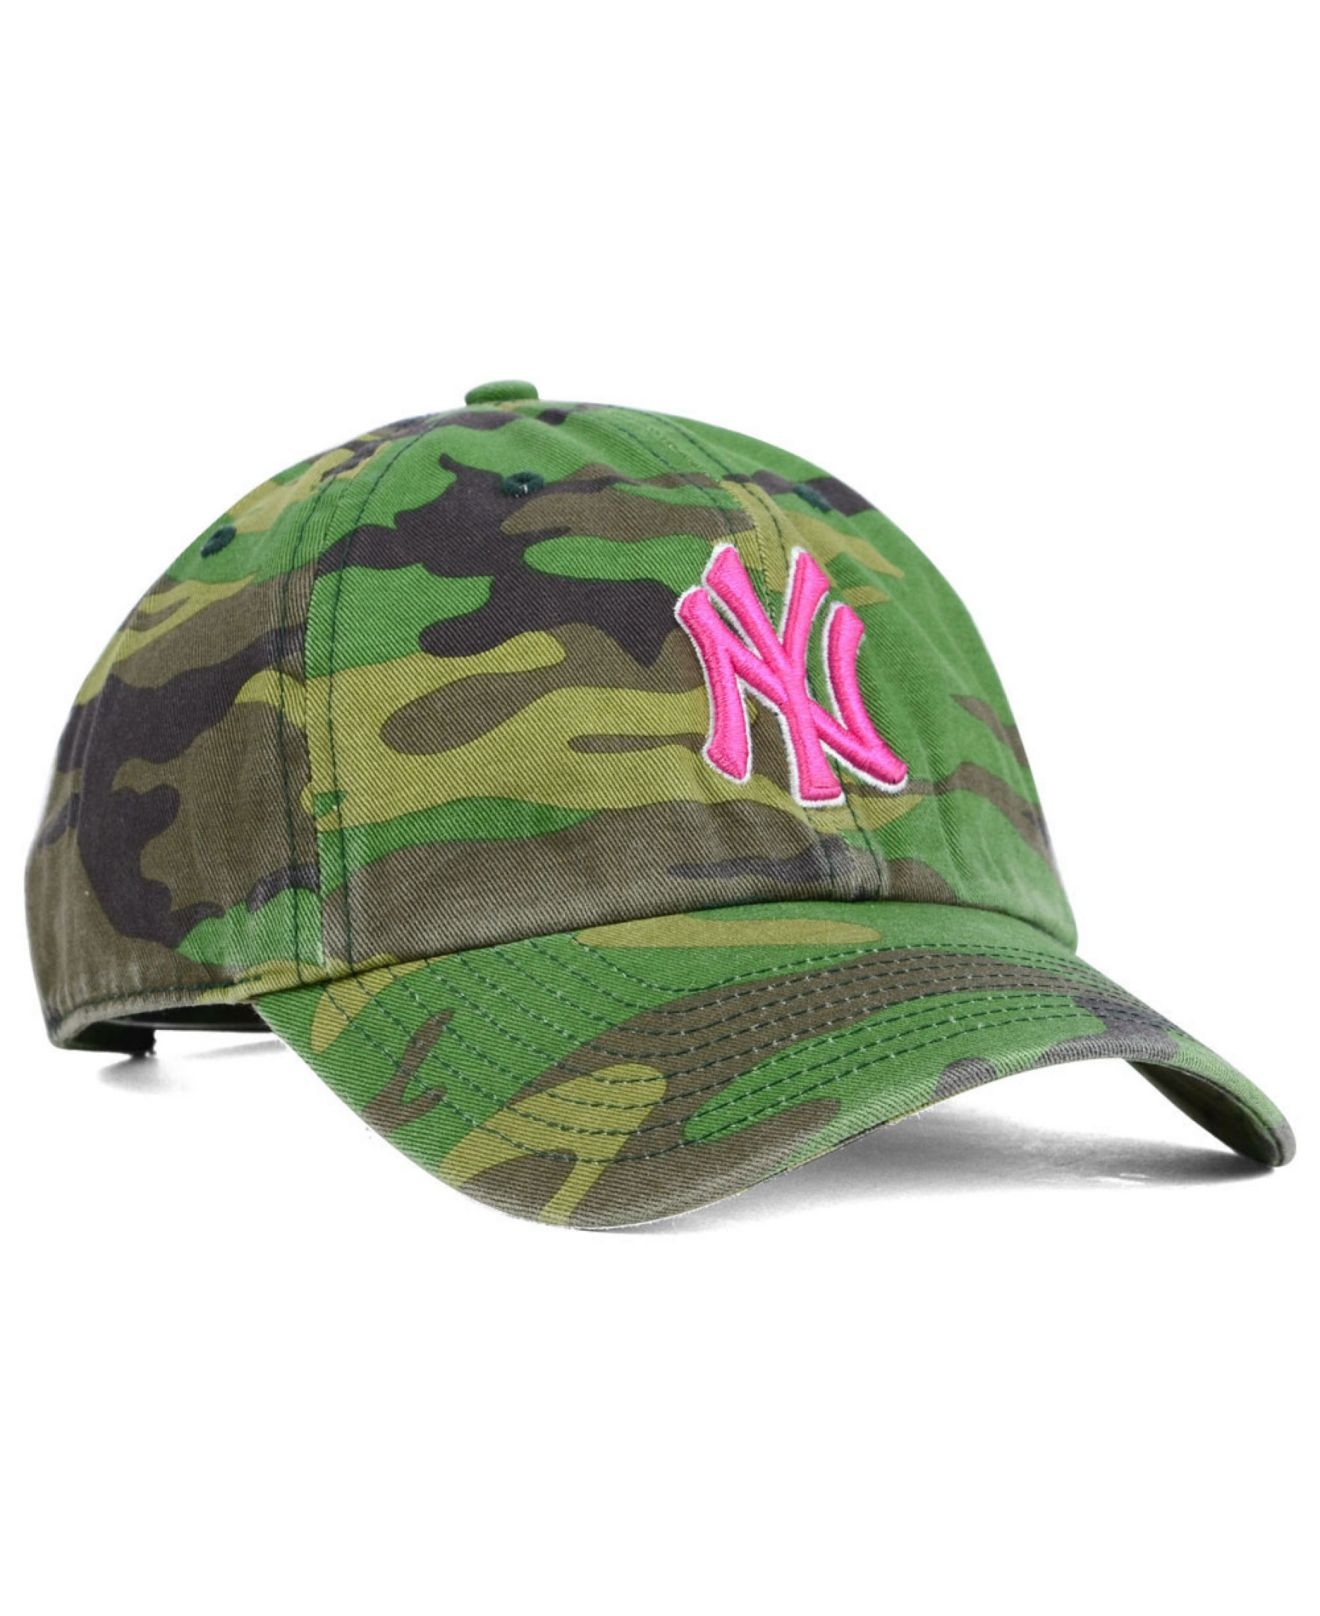 0be5c0bc50a5ee 47 Brand Women's New York Yankees Clean Up Cap in Green - Lyst